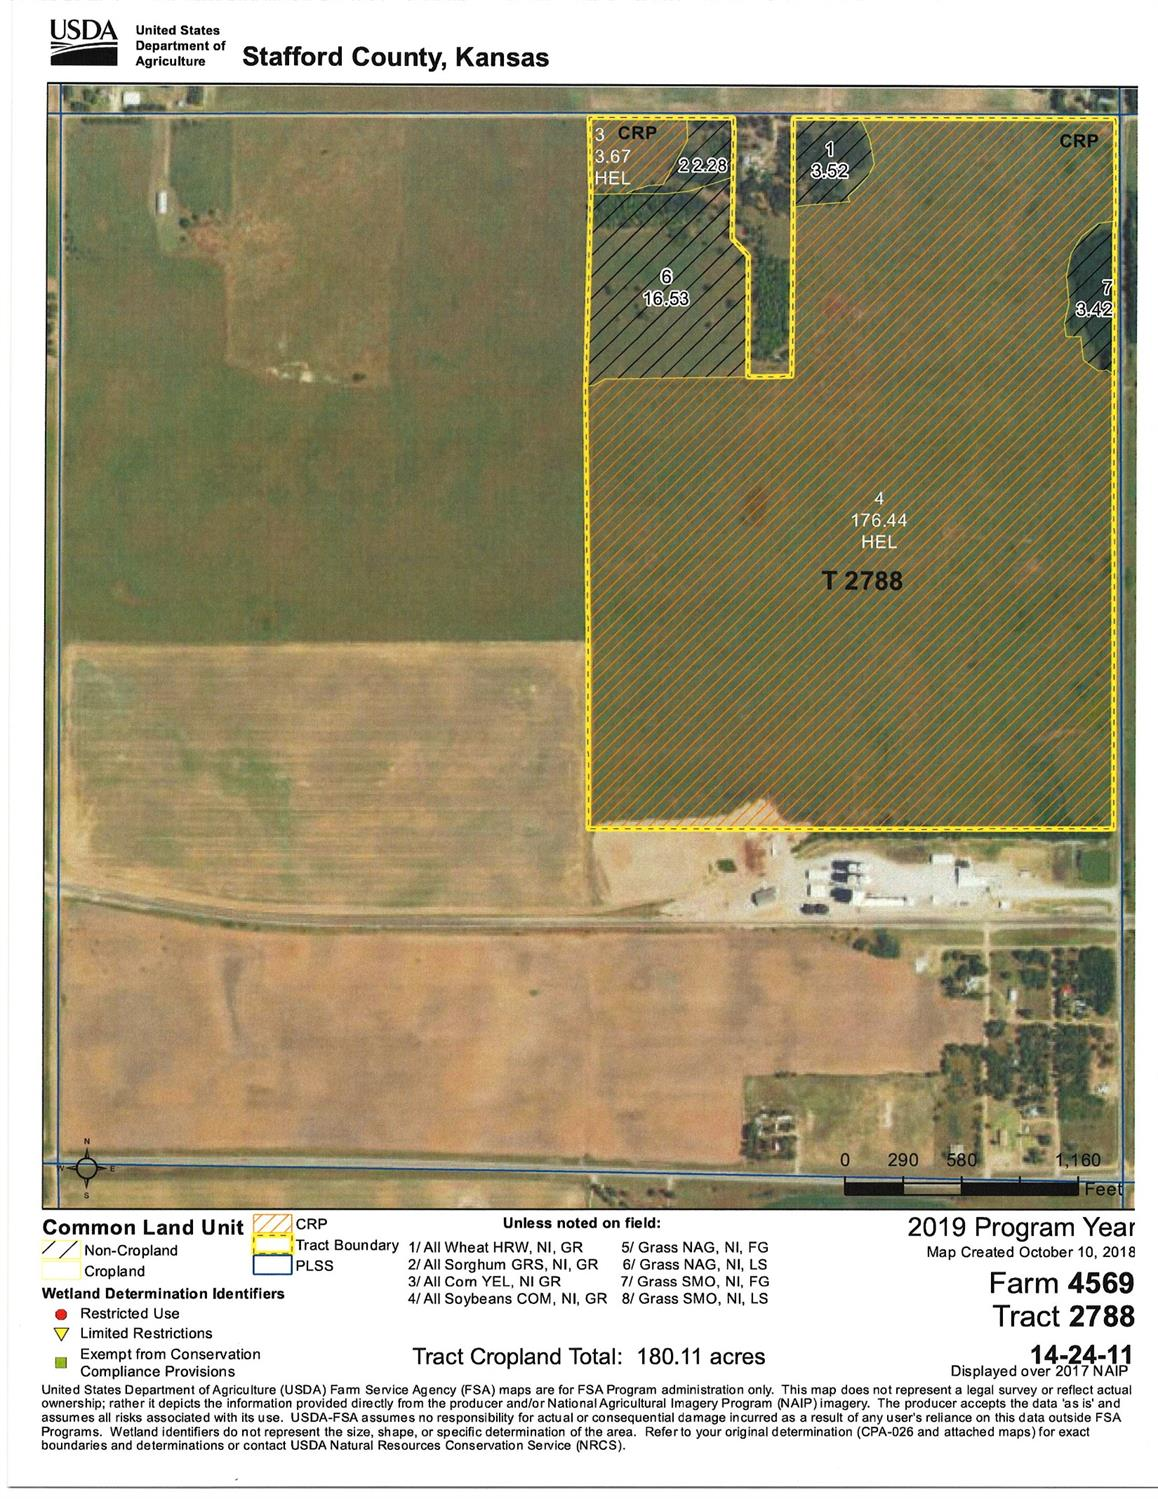 Good CRP tract next to blacktop. 205.86 total acres, 180.11 enrolled in CRP, balance of 25.75 +/- acres in pasture grass, trees & waste.  Annual CRP payment is $8,879.00 and CRP contract expires 09/30/2022. Mineral rights are intact and sell with land.  Mineral rights are believed to be all intact but not represented as such.  There is no production on the land currently but the mineral rights are in the Zenith-Peace Creek Water Flood Project.  Oil Income is stated as follows:  2014-$4,628.68, 2015-$1,722.28, 2016-$1,409.52, 2017-$2,530.36, 2018-$895.72 & 2019-$1,454.60(as of May)